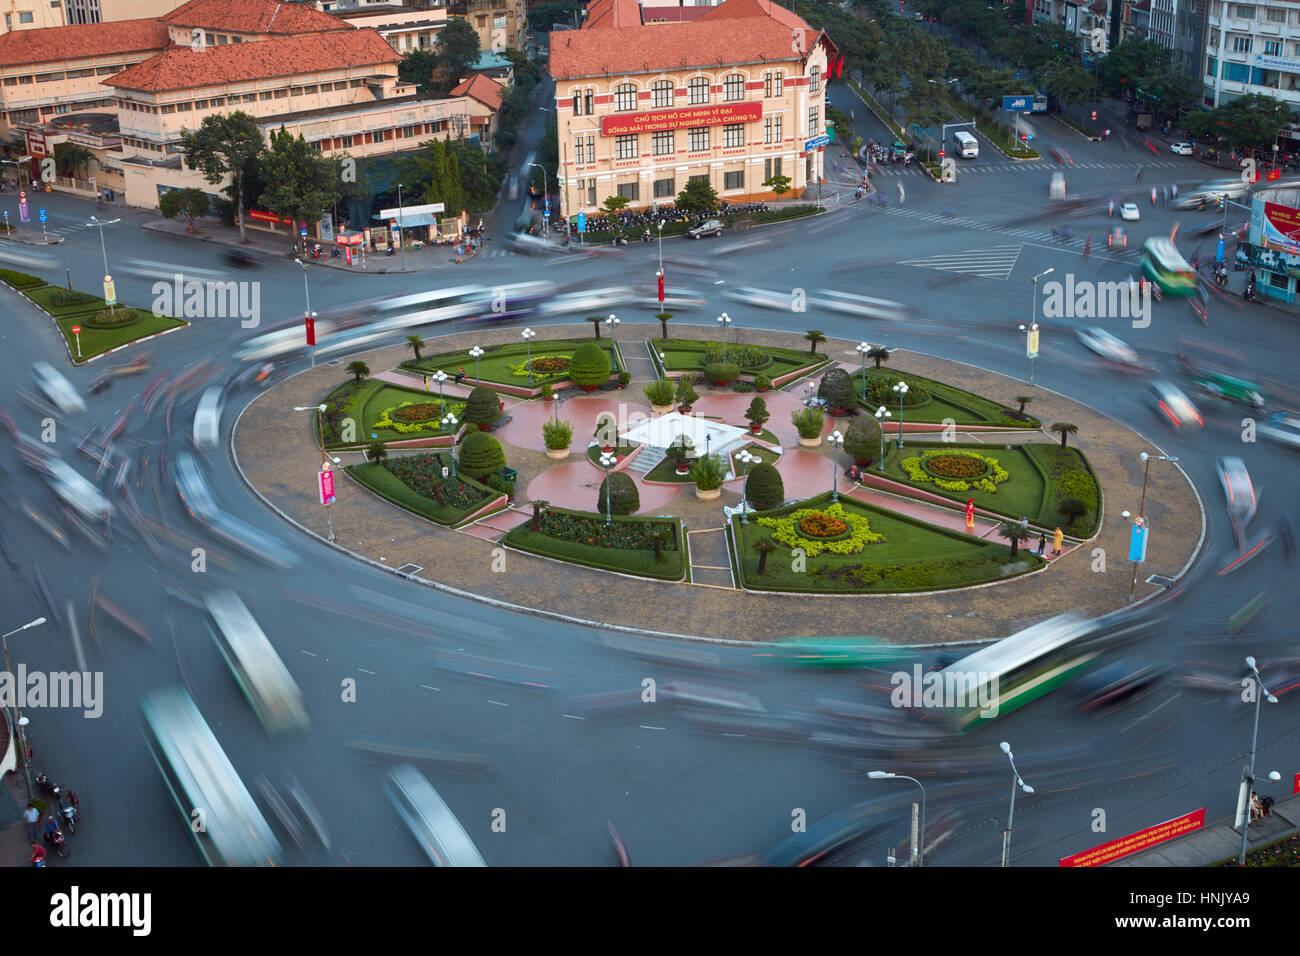 Blurred traffic at Ben Thanh roundabout, Ho Chi Minh City (Saigon), Vietnam - Stock Image